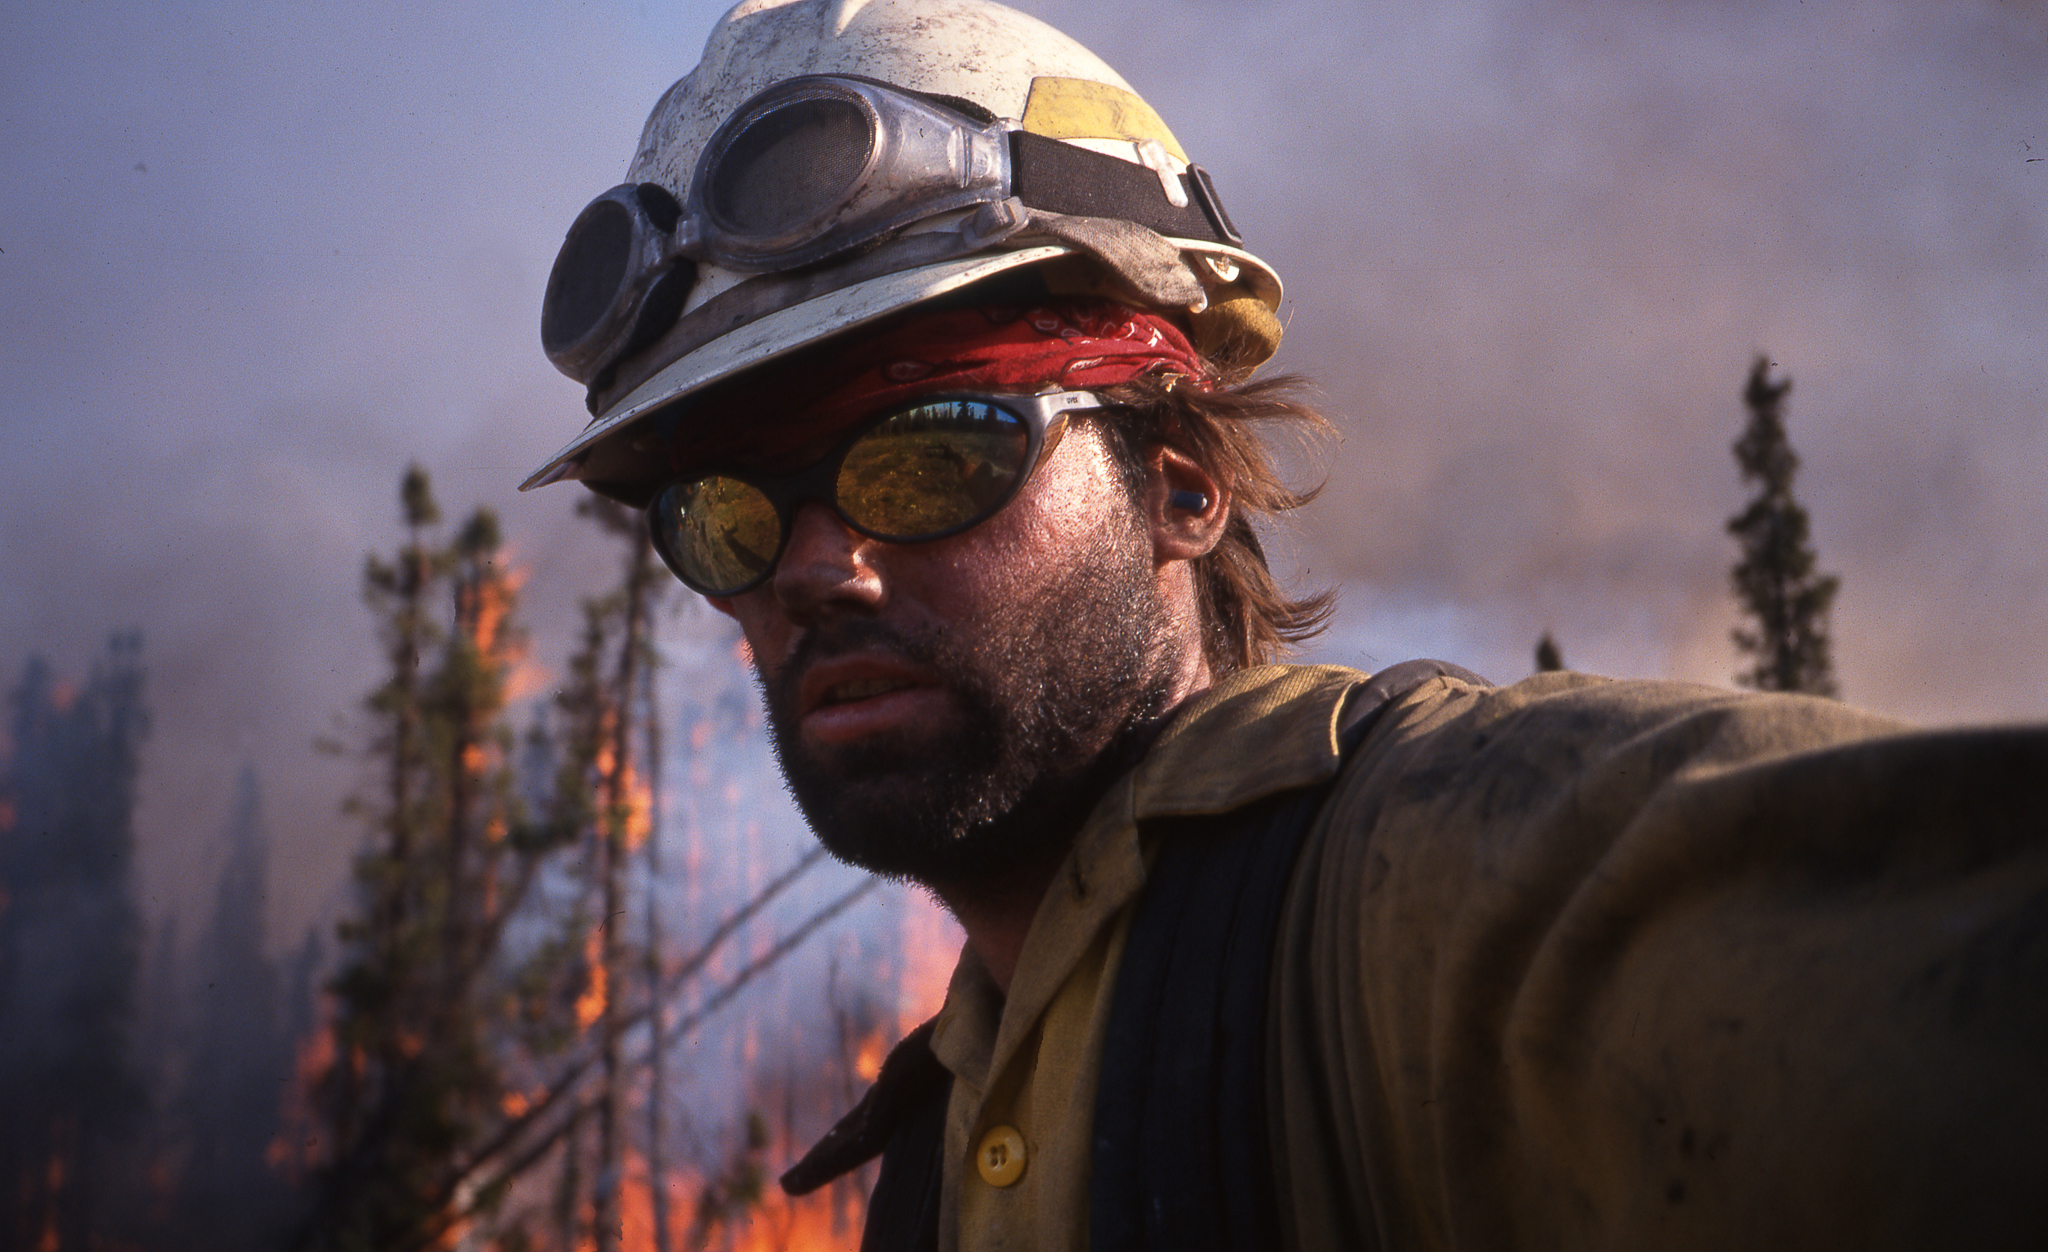 Figenshau fought fires to launch his career as a photographer. PHOTO: Chris Figenshau